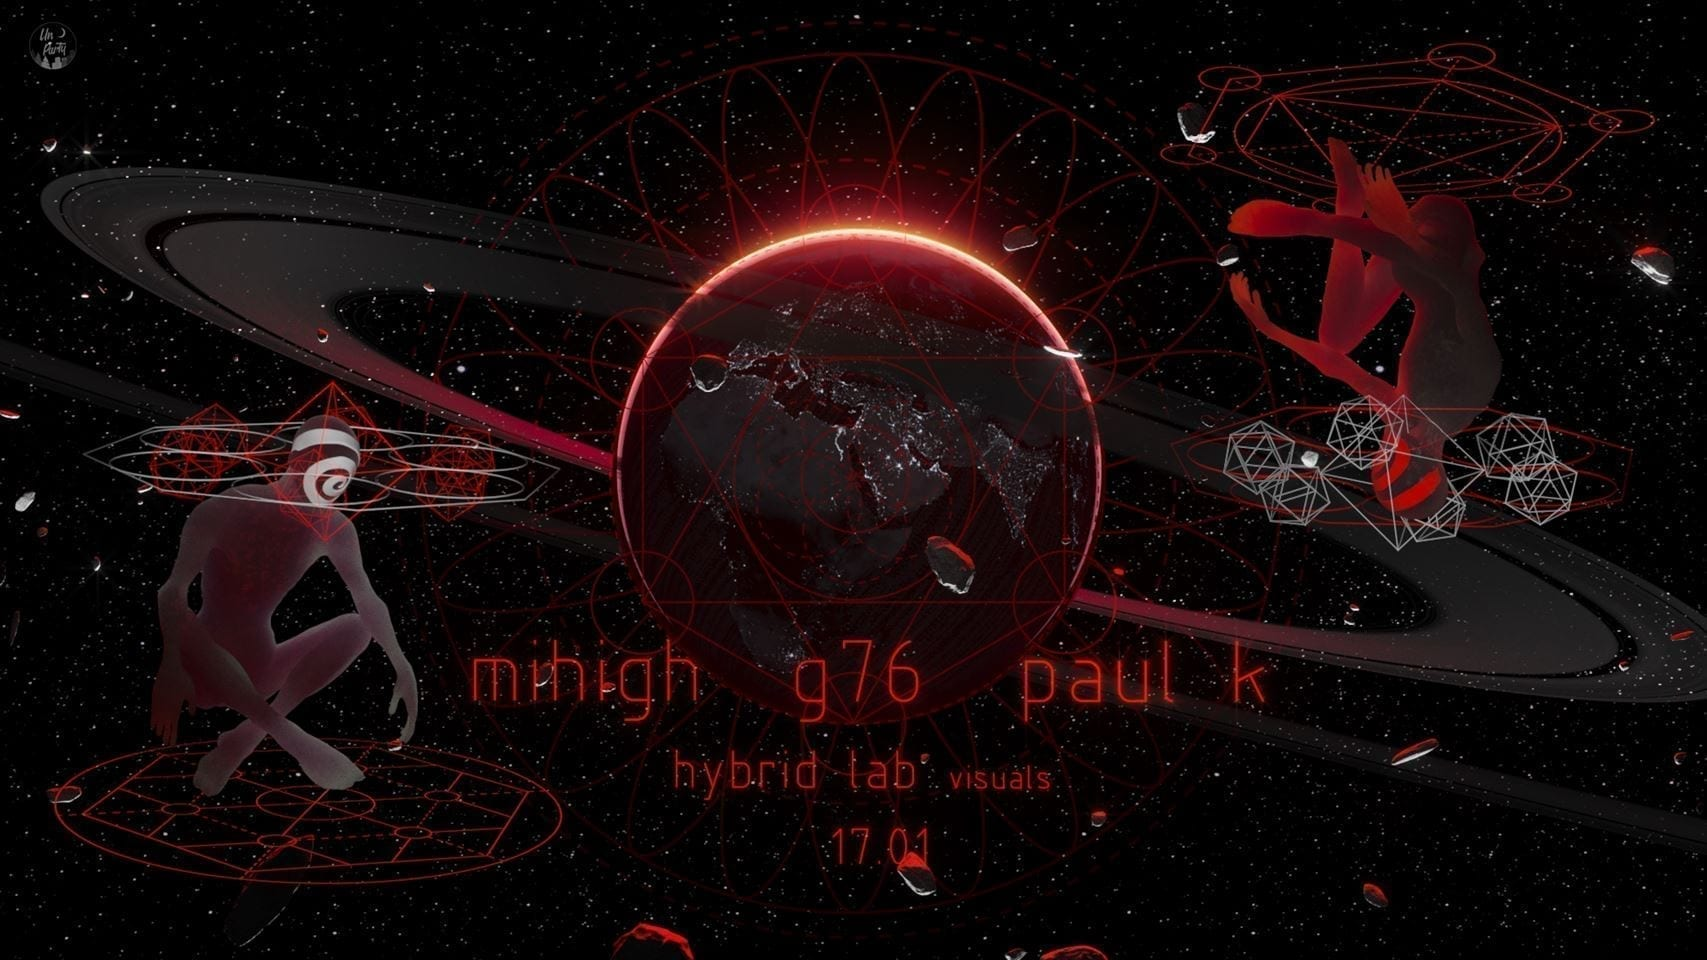 Un.Party w/ Mihigh // G76 // Paul K